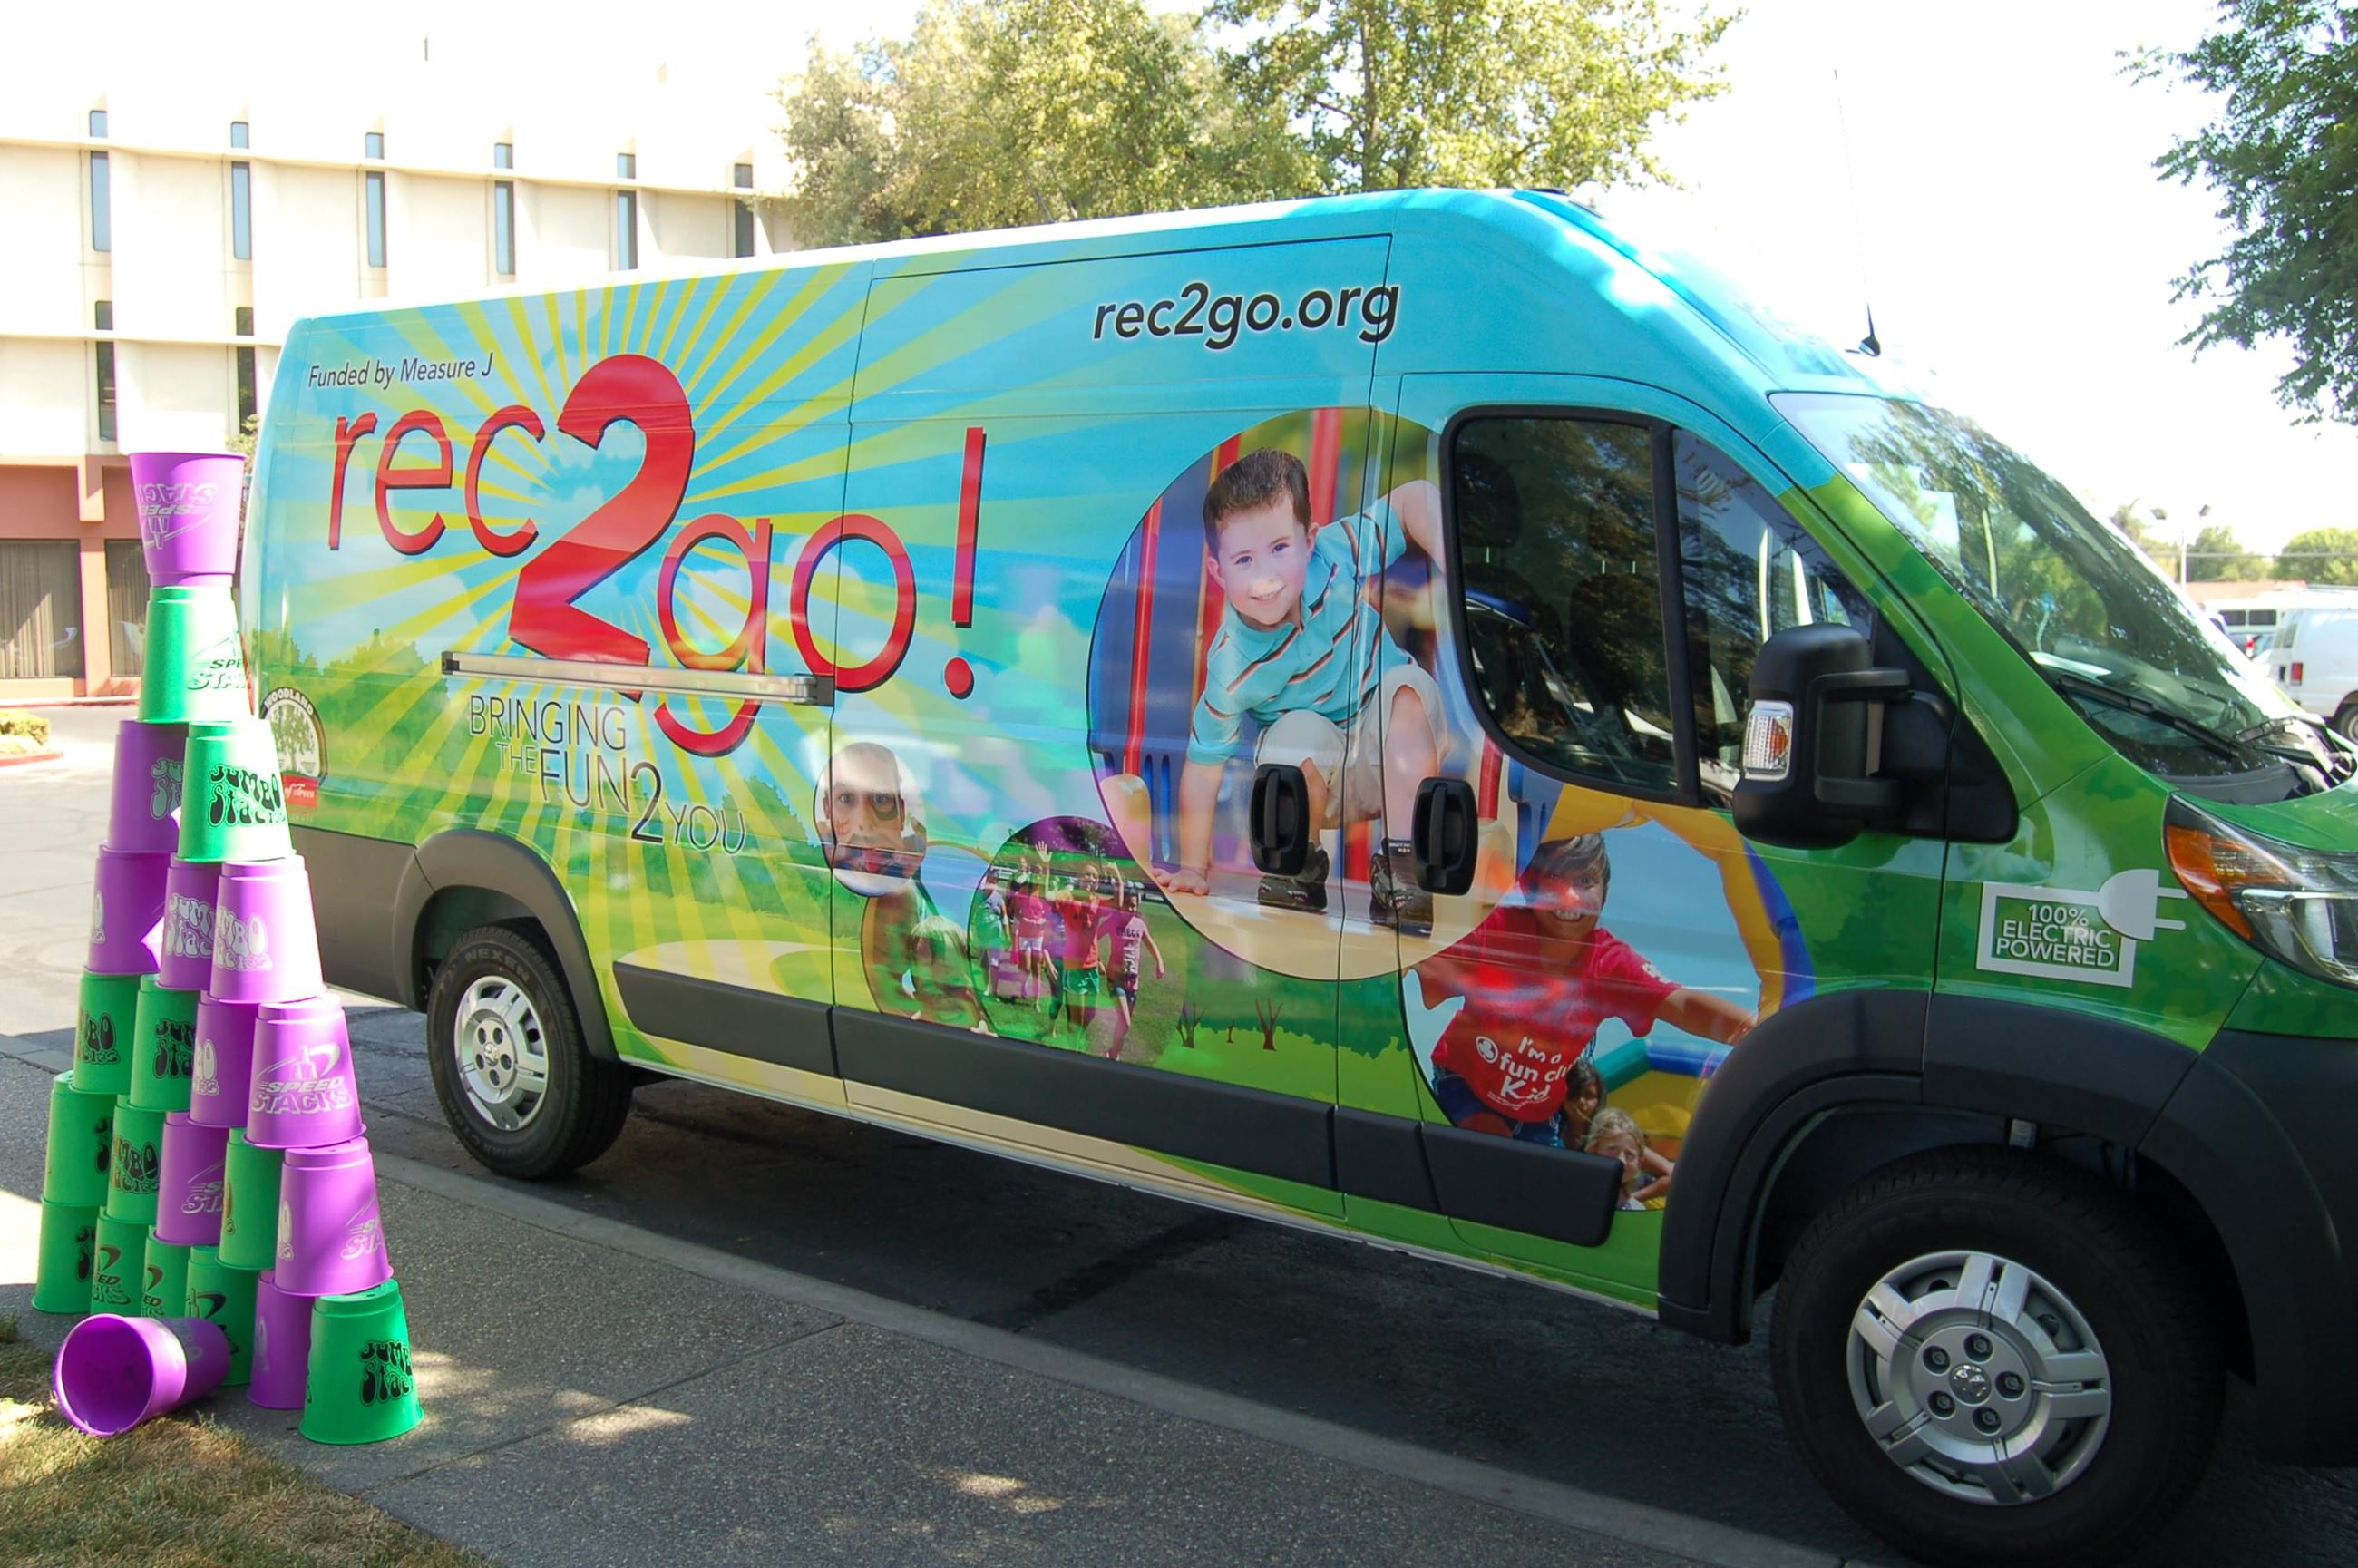 rec2go vehicle